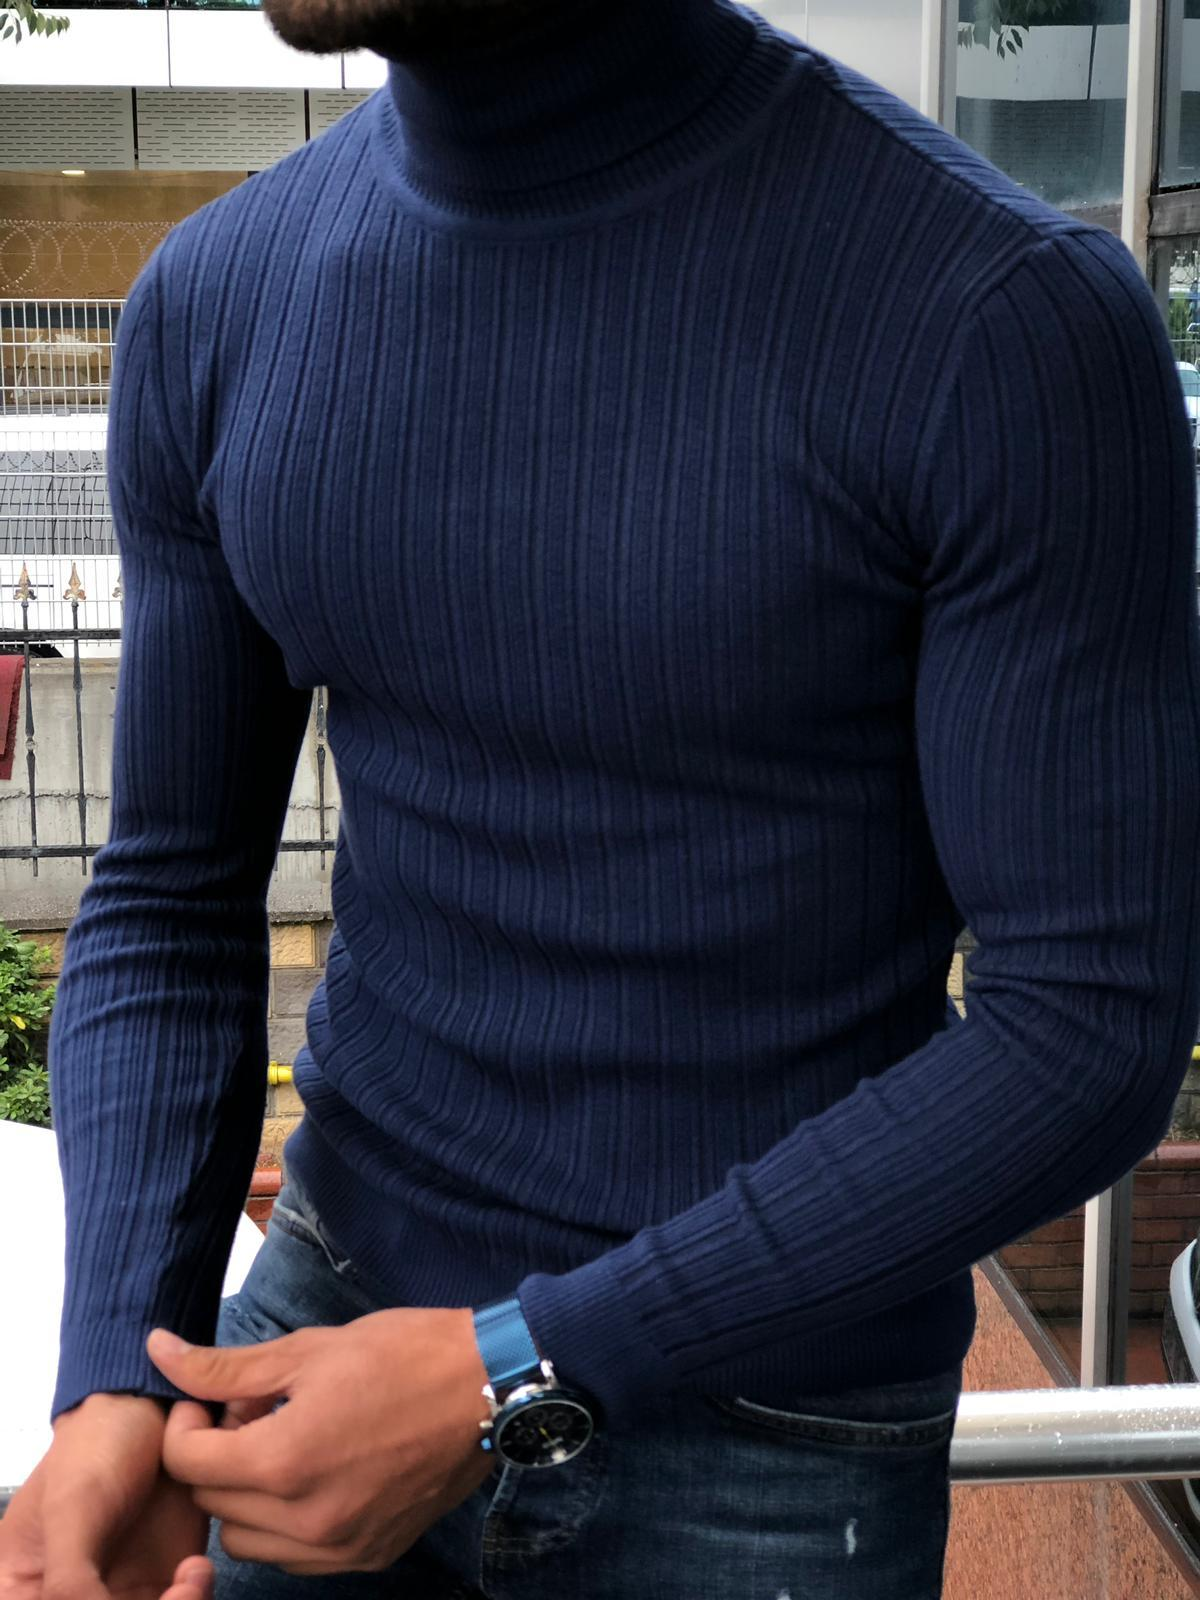 Eva Slim-Fit Turtleneck Knitwear in 5 Colors